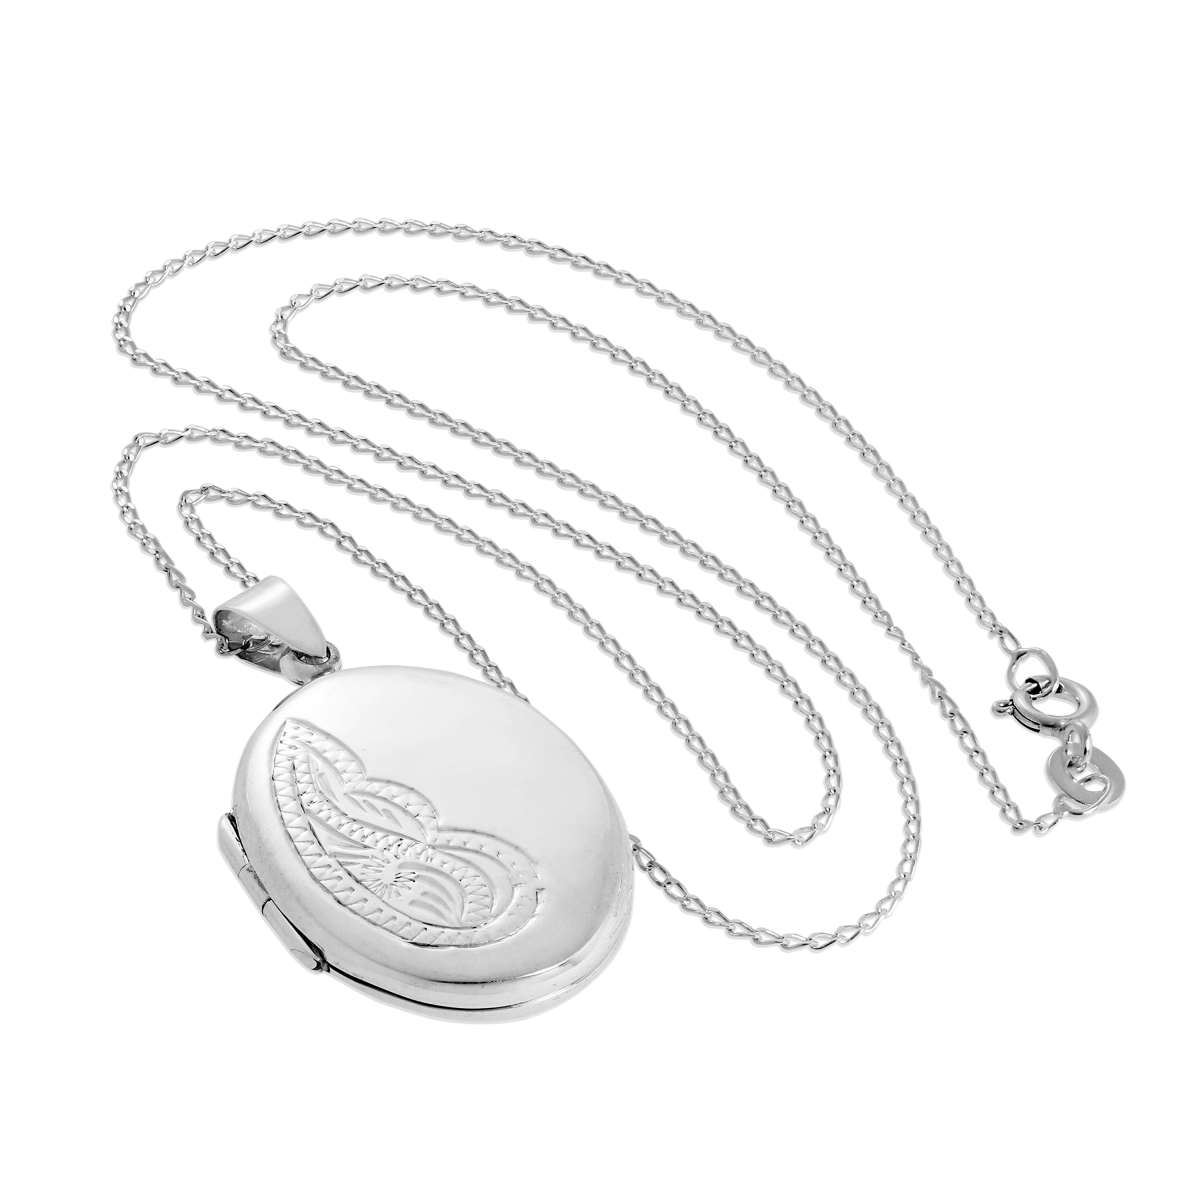 Alterative image for Sterling Silver Large Oval Floral Locket on Chain 14 - 32 Inches